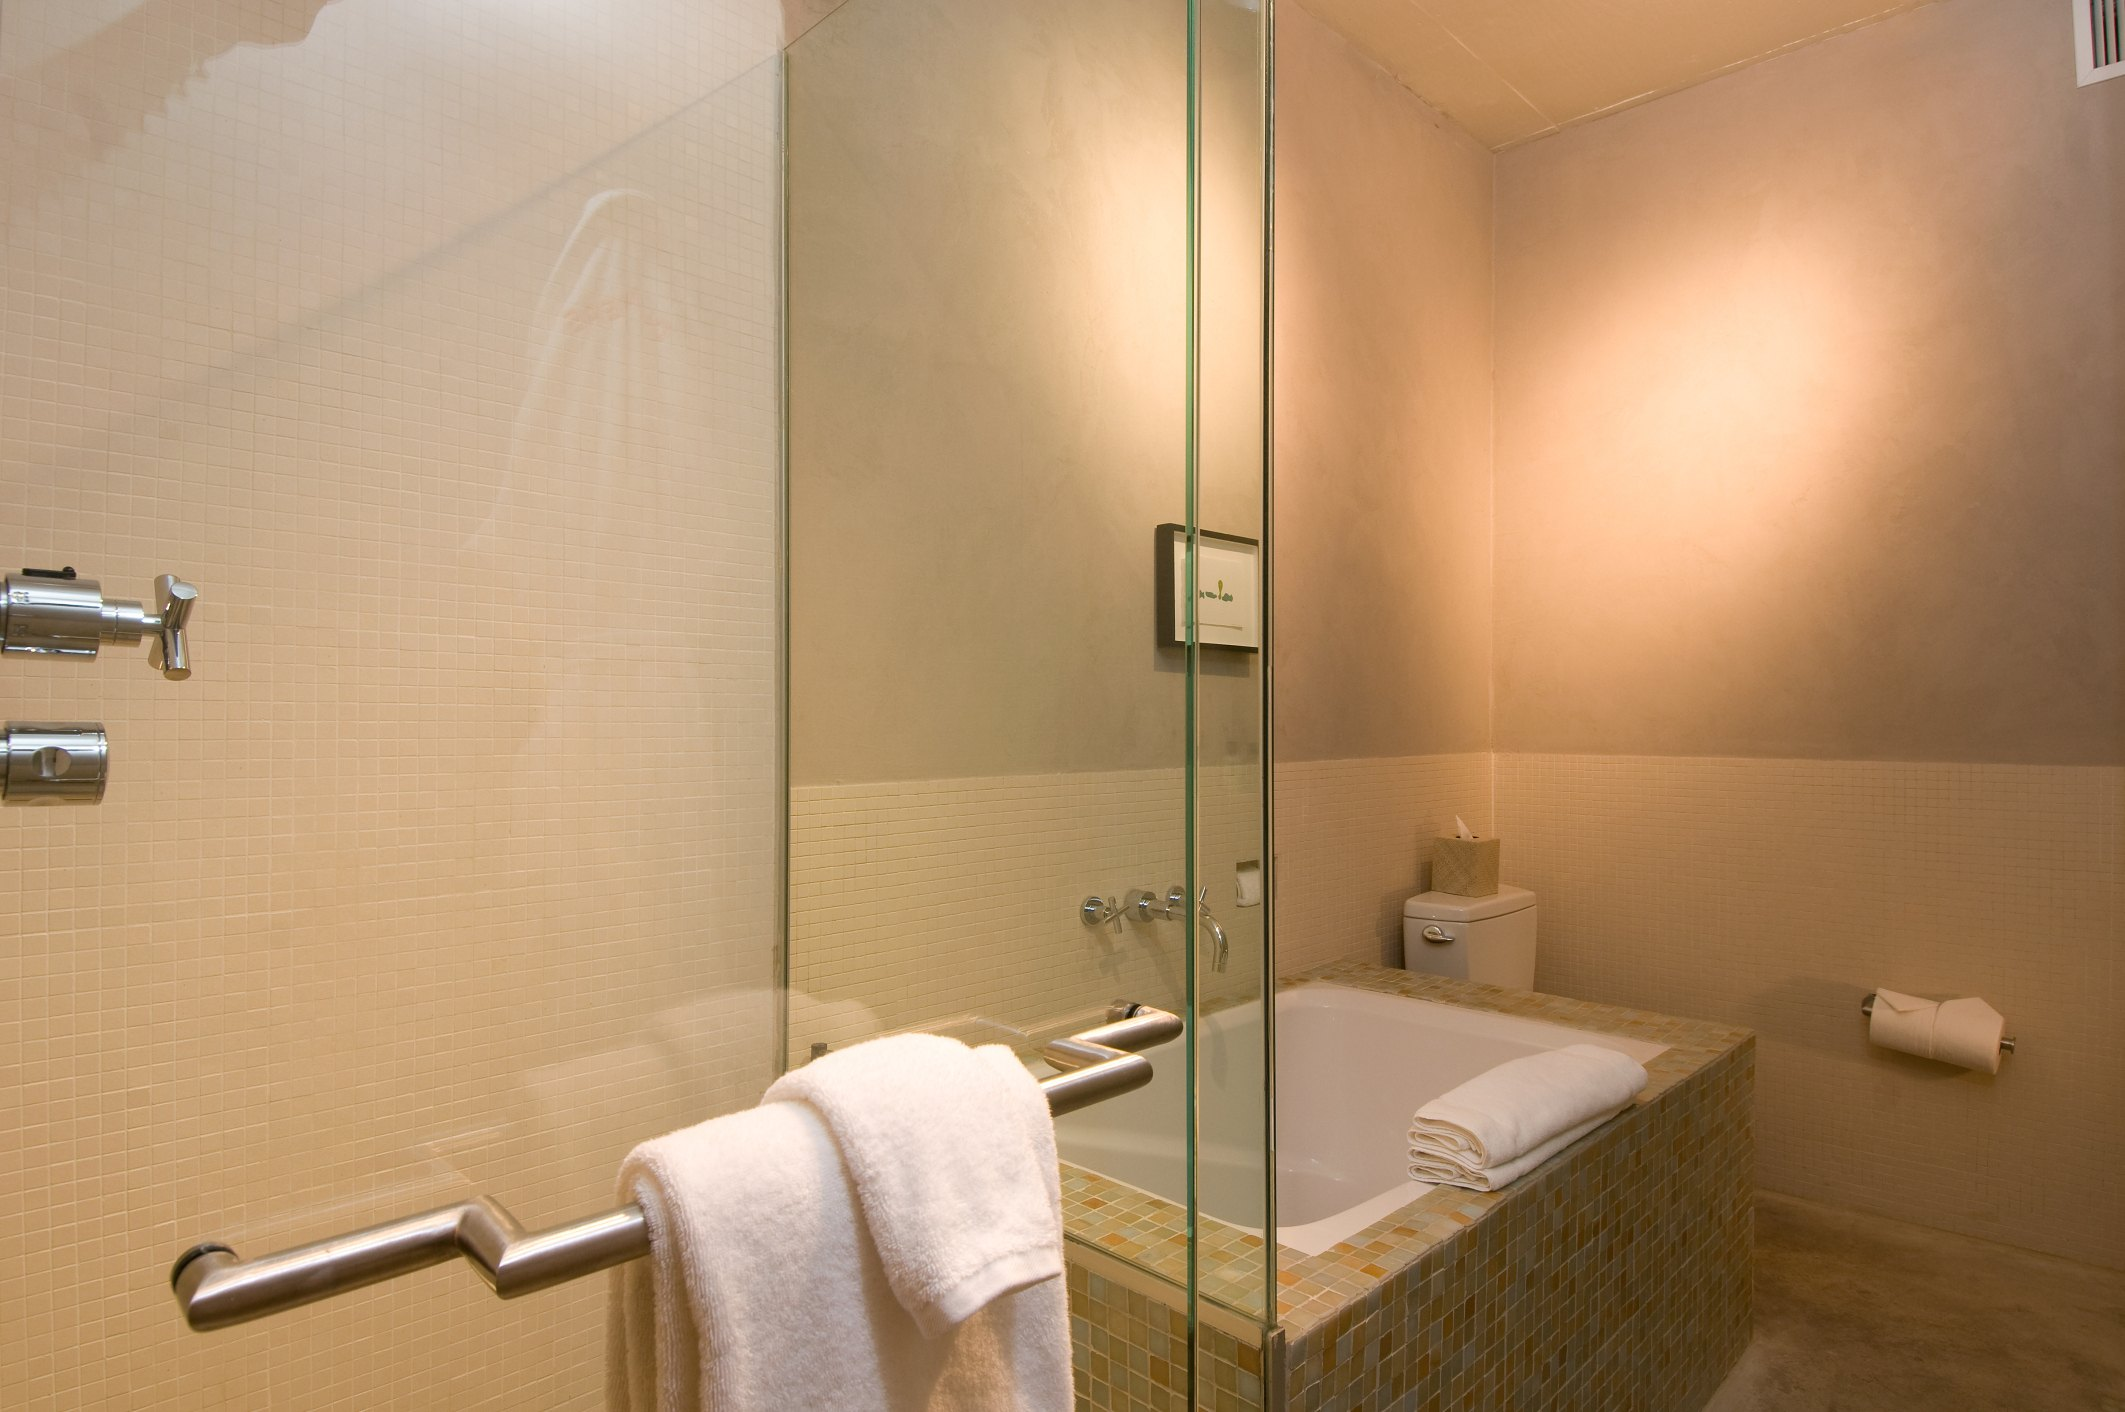 How To Clean A Bathroom Shower Door With Ammonia Ehow